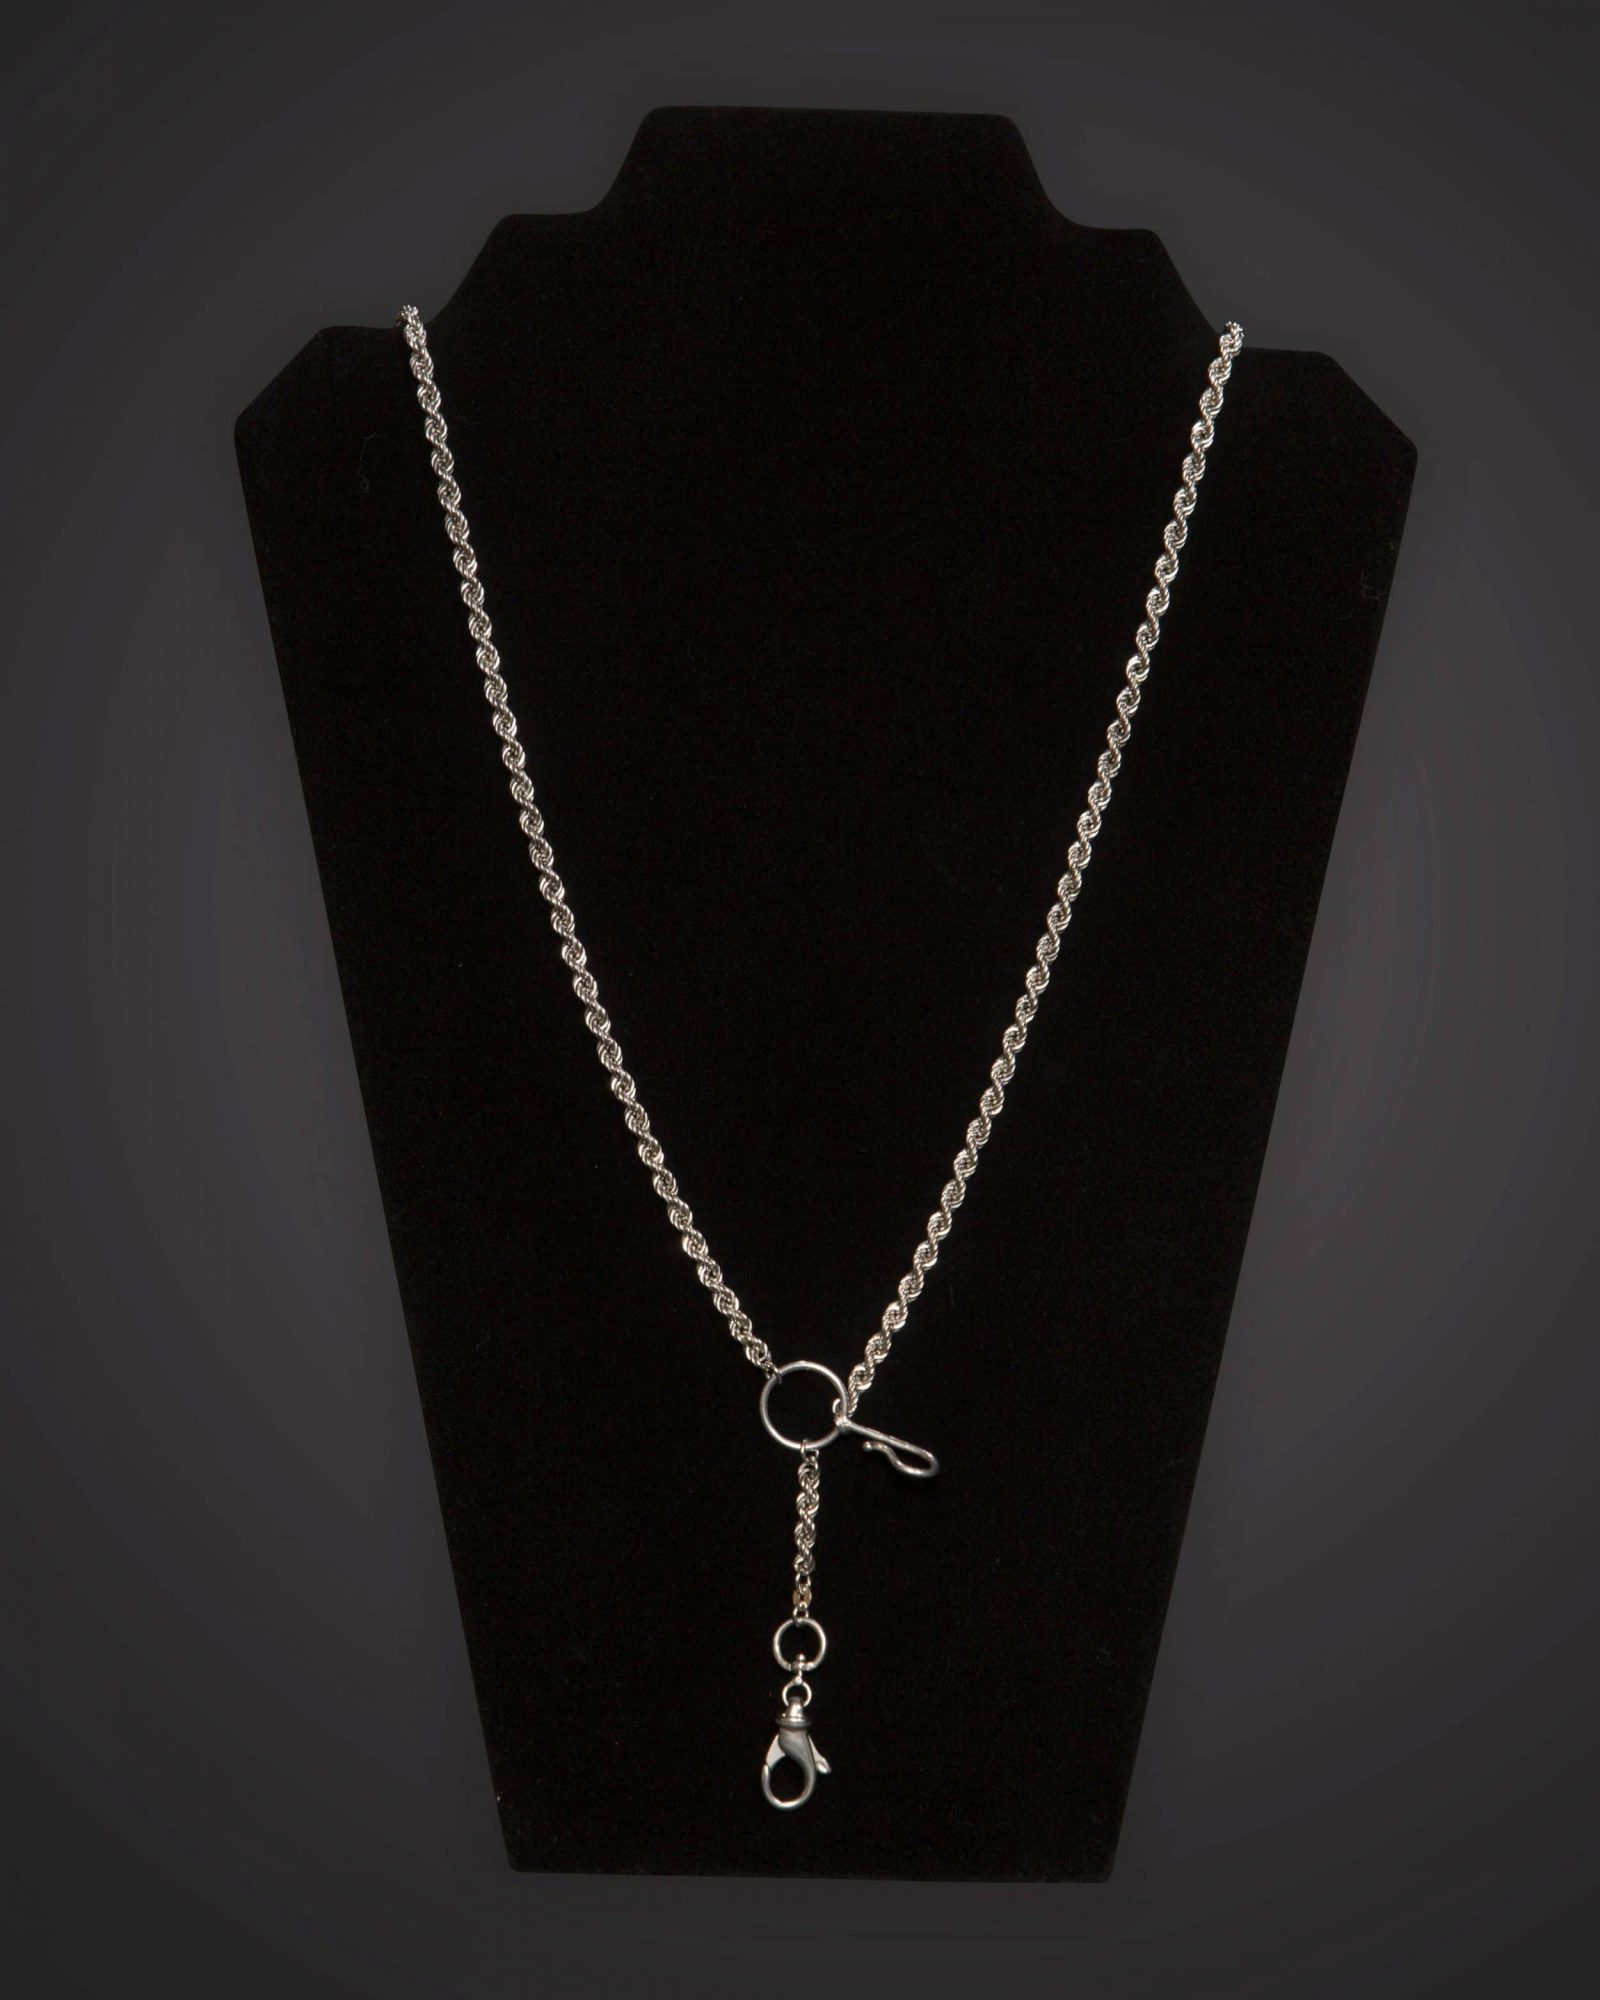 Pectoral Chain - Braided - Long - Silver Plated